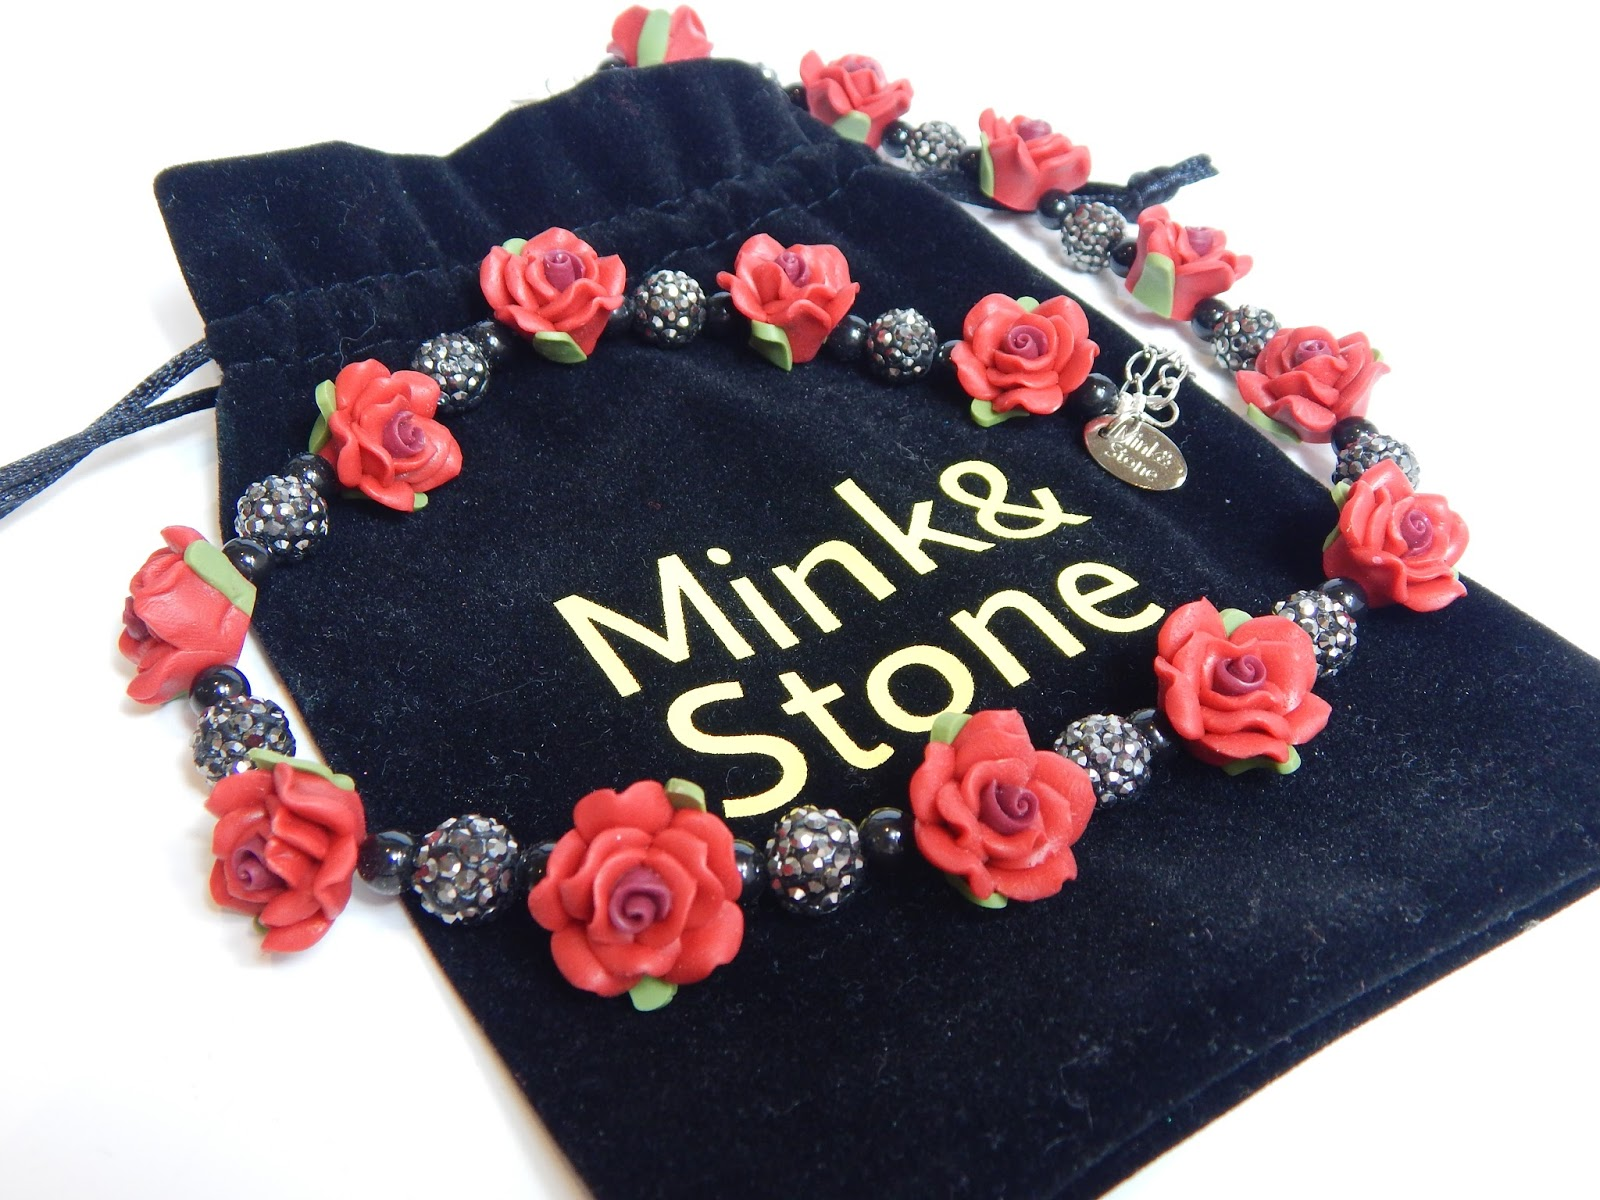 Jewellery Design Competition with Mink & Stone!